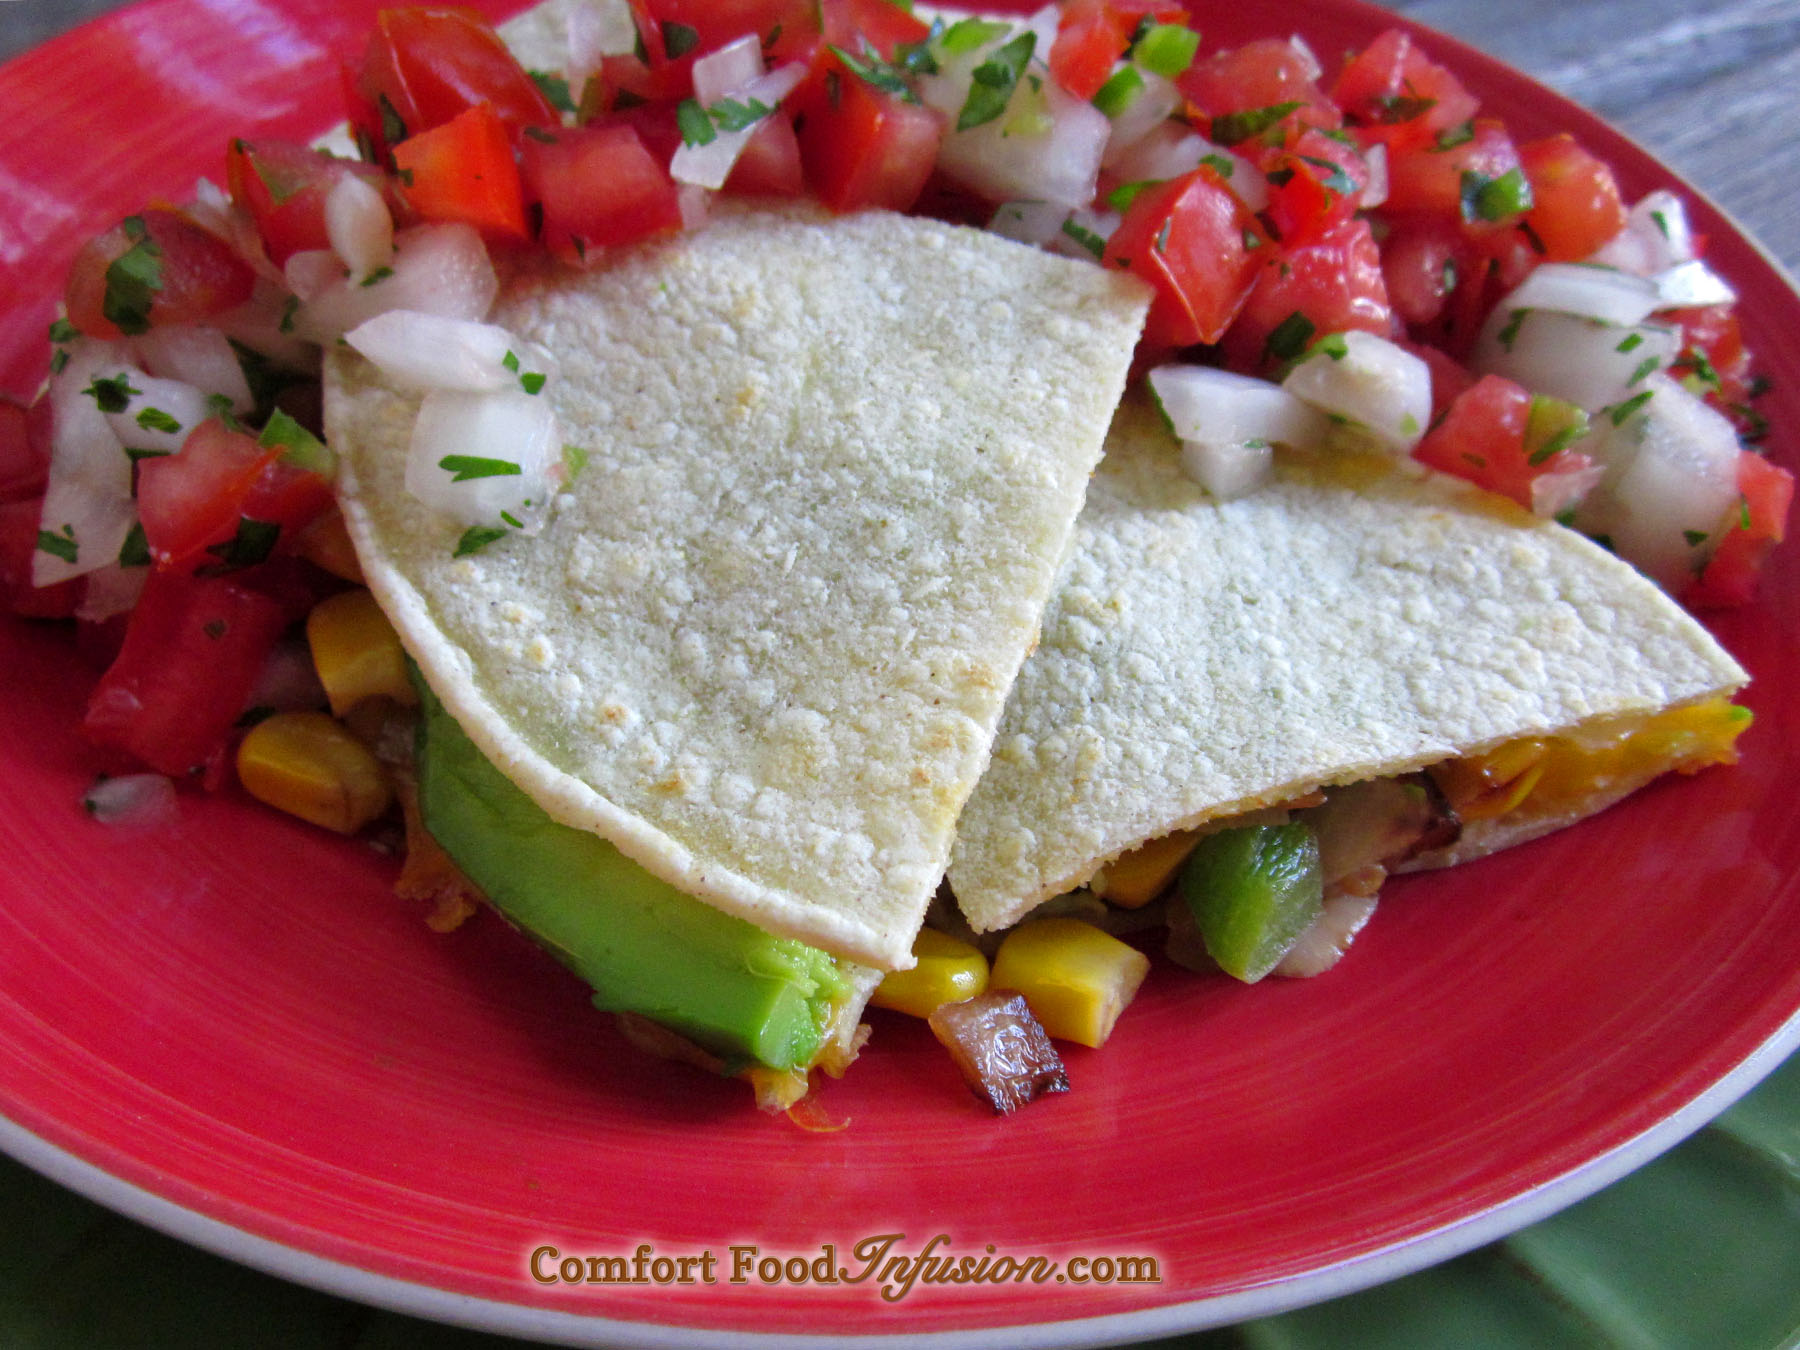 Cheese and Veggie Quesadilla, with grilled veggies, avocados, and a ...